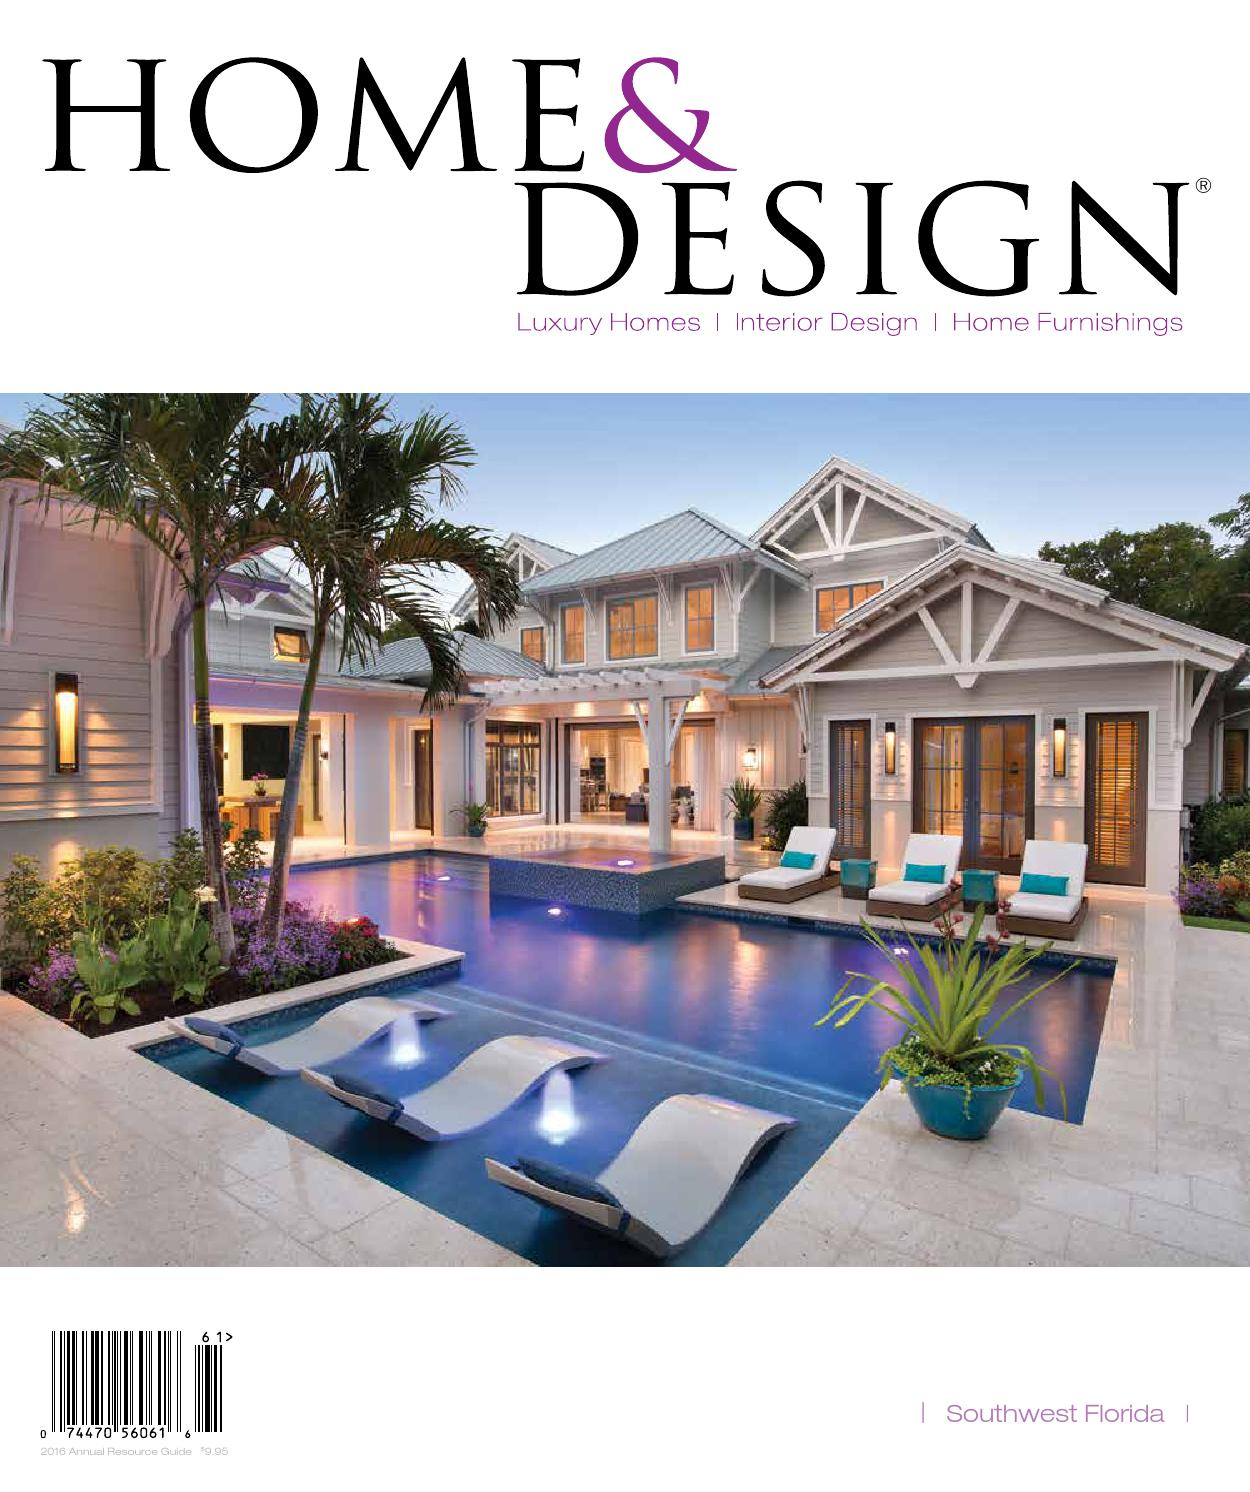 Home Design Magazine home & design magazine | annual resource guide 2016 | southwest